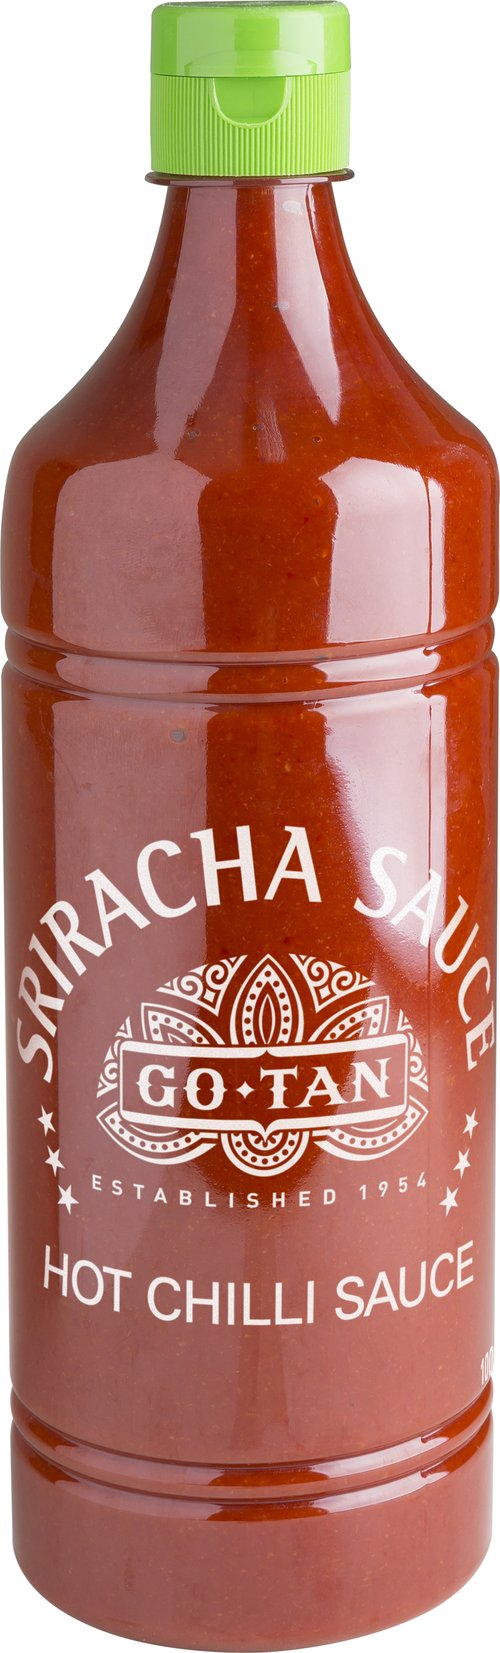 8710605020755_02075_Sriracha_HOT_Chilli_Sauce_1000ml.jpg